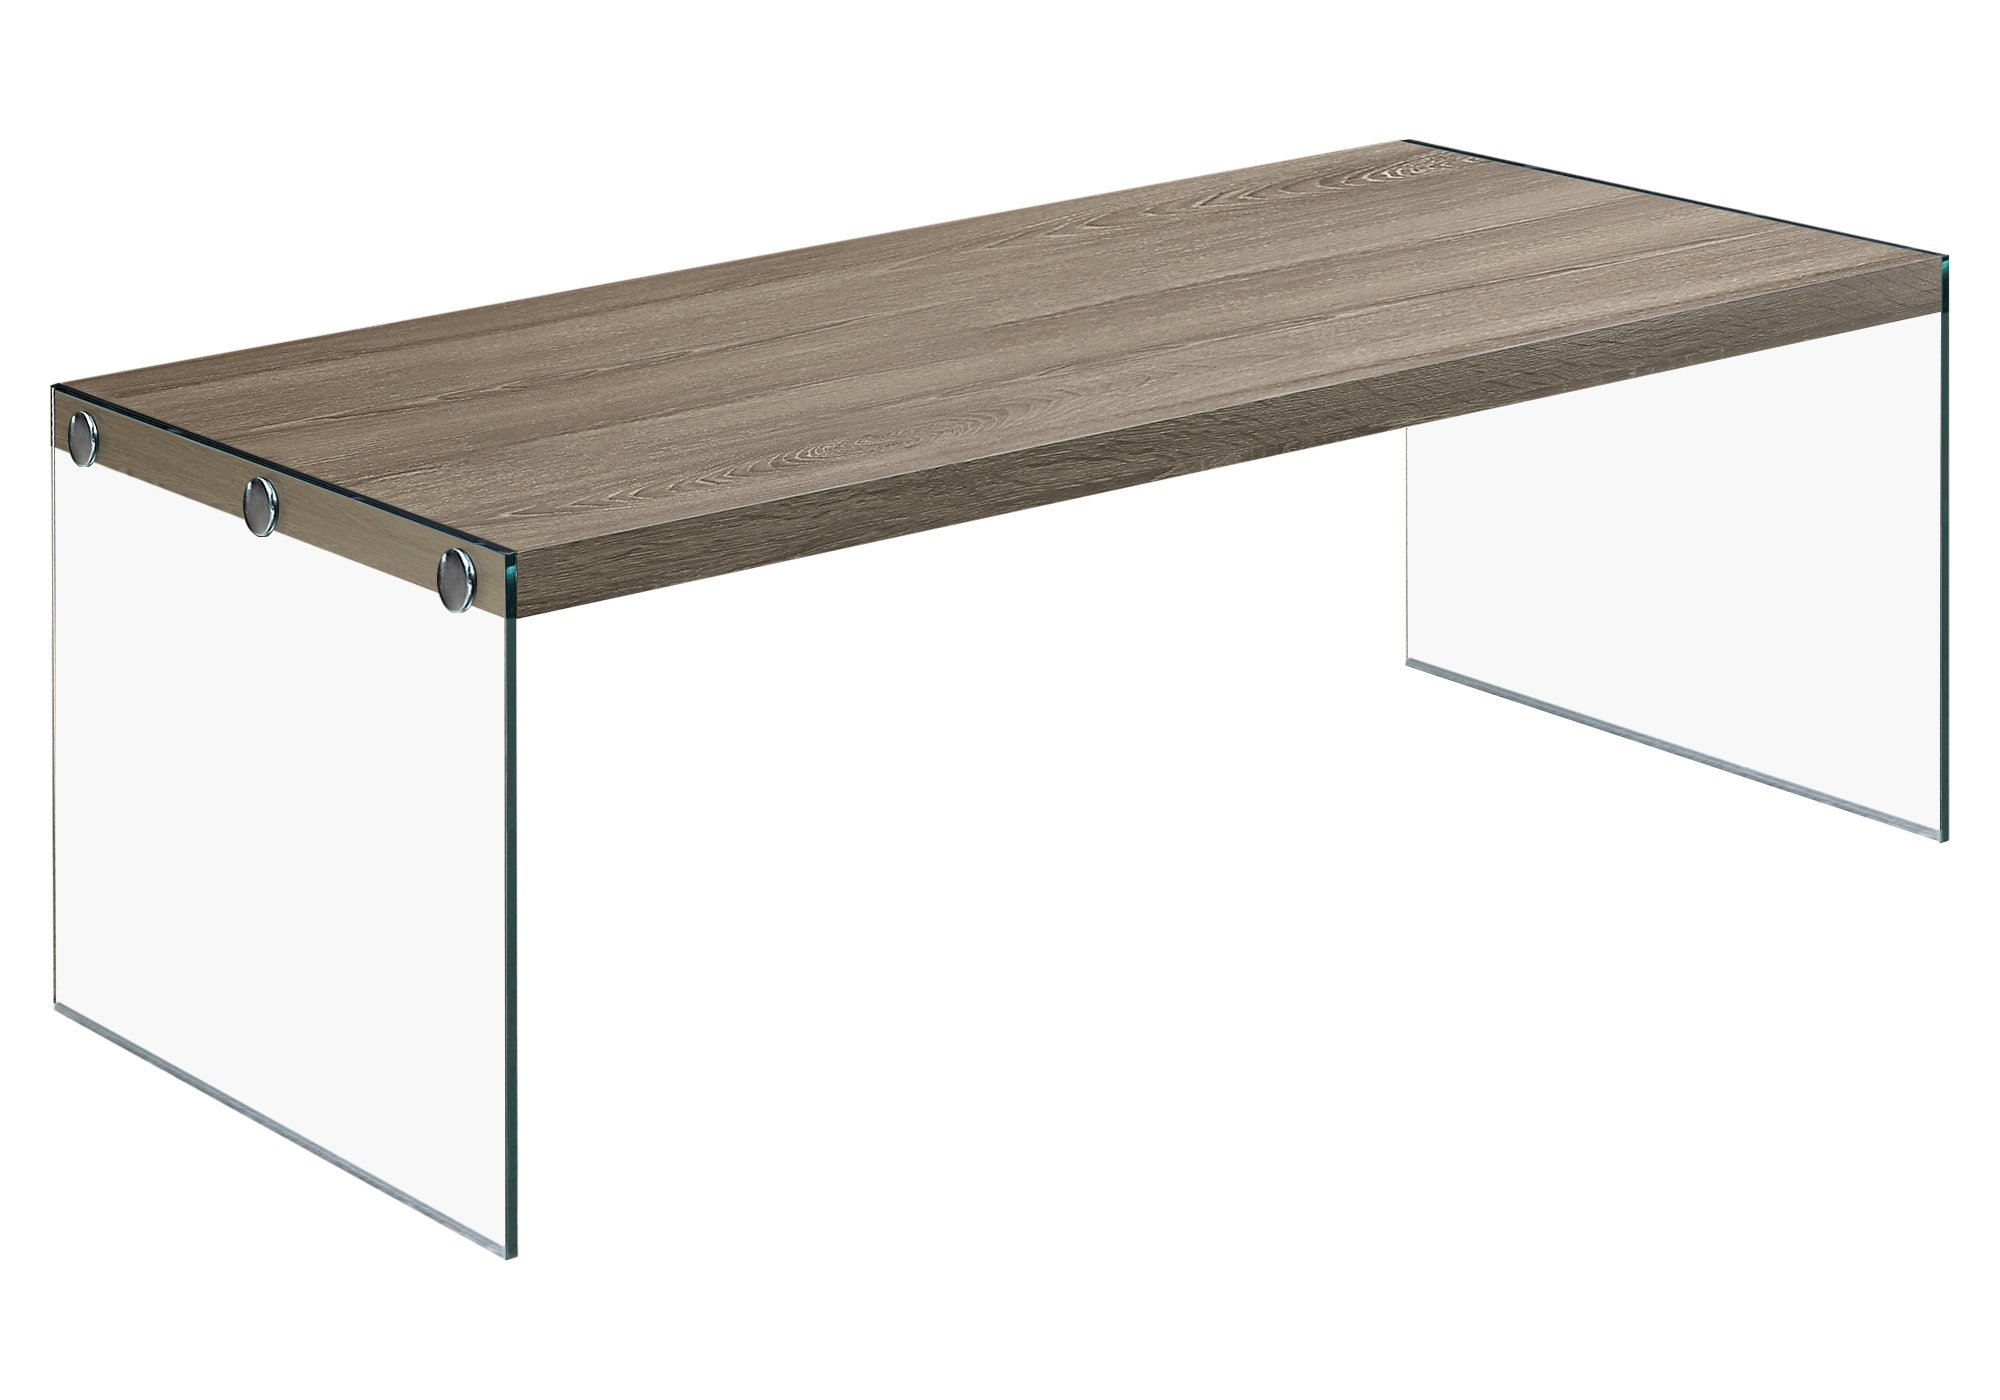 Monarch specialties , Coffee Table, Tempered Glass, Dark Taupe, 44''L by Monarch Specialties